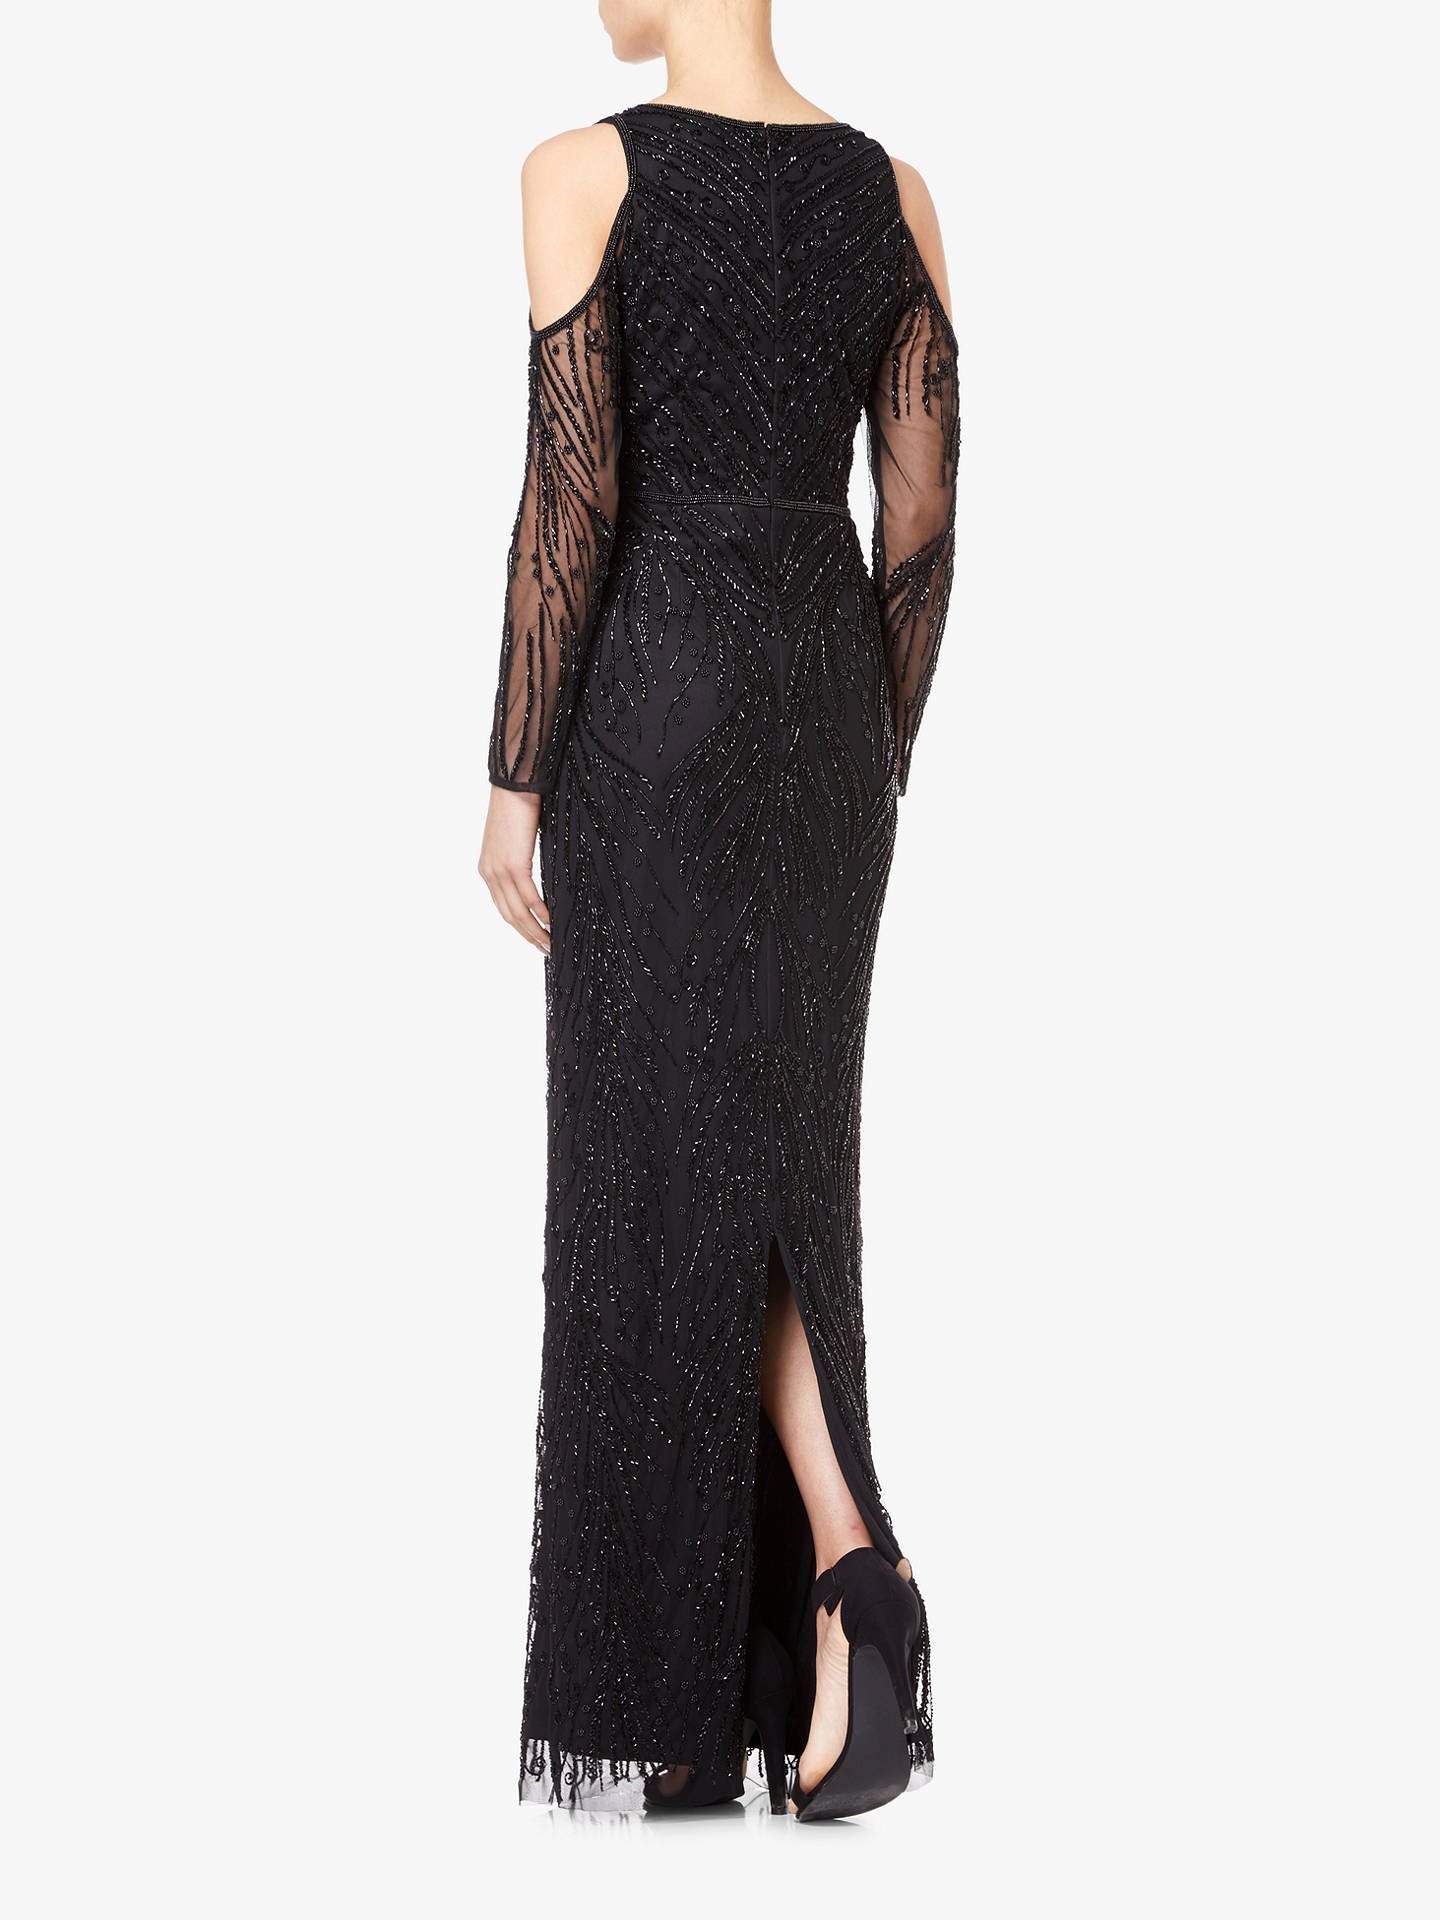 BuyAdrianna Papell Beaded Cold Shoulder Long Dress, Black, 10 Online at johnlewis.com